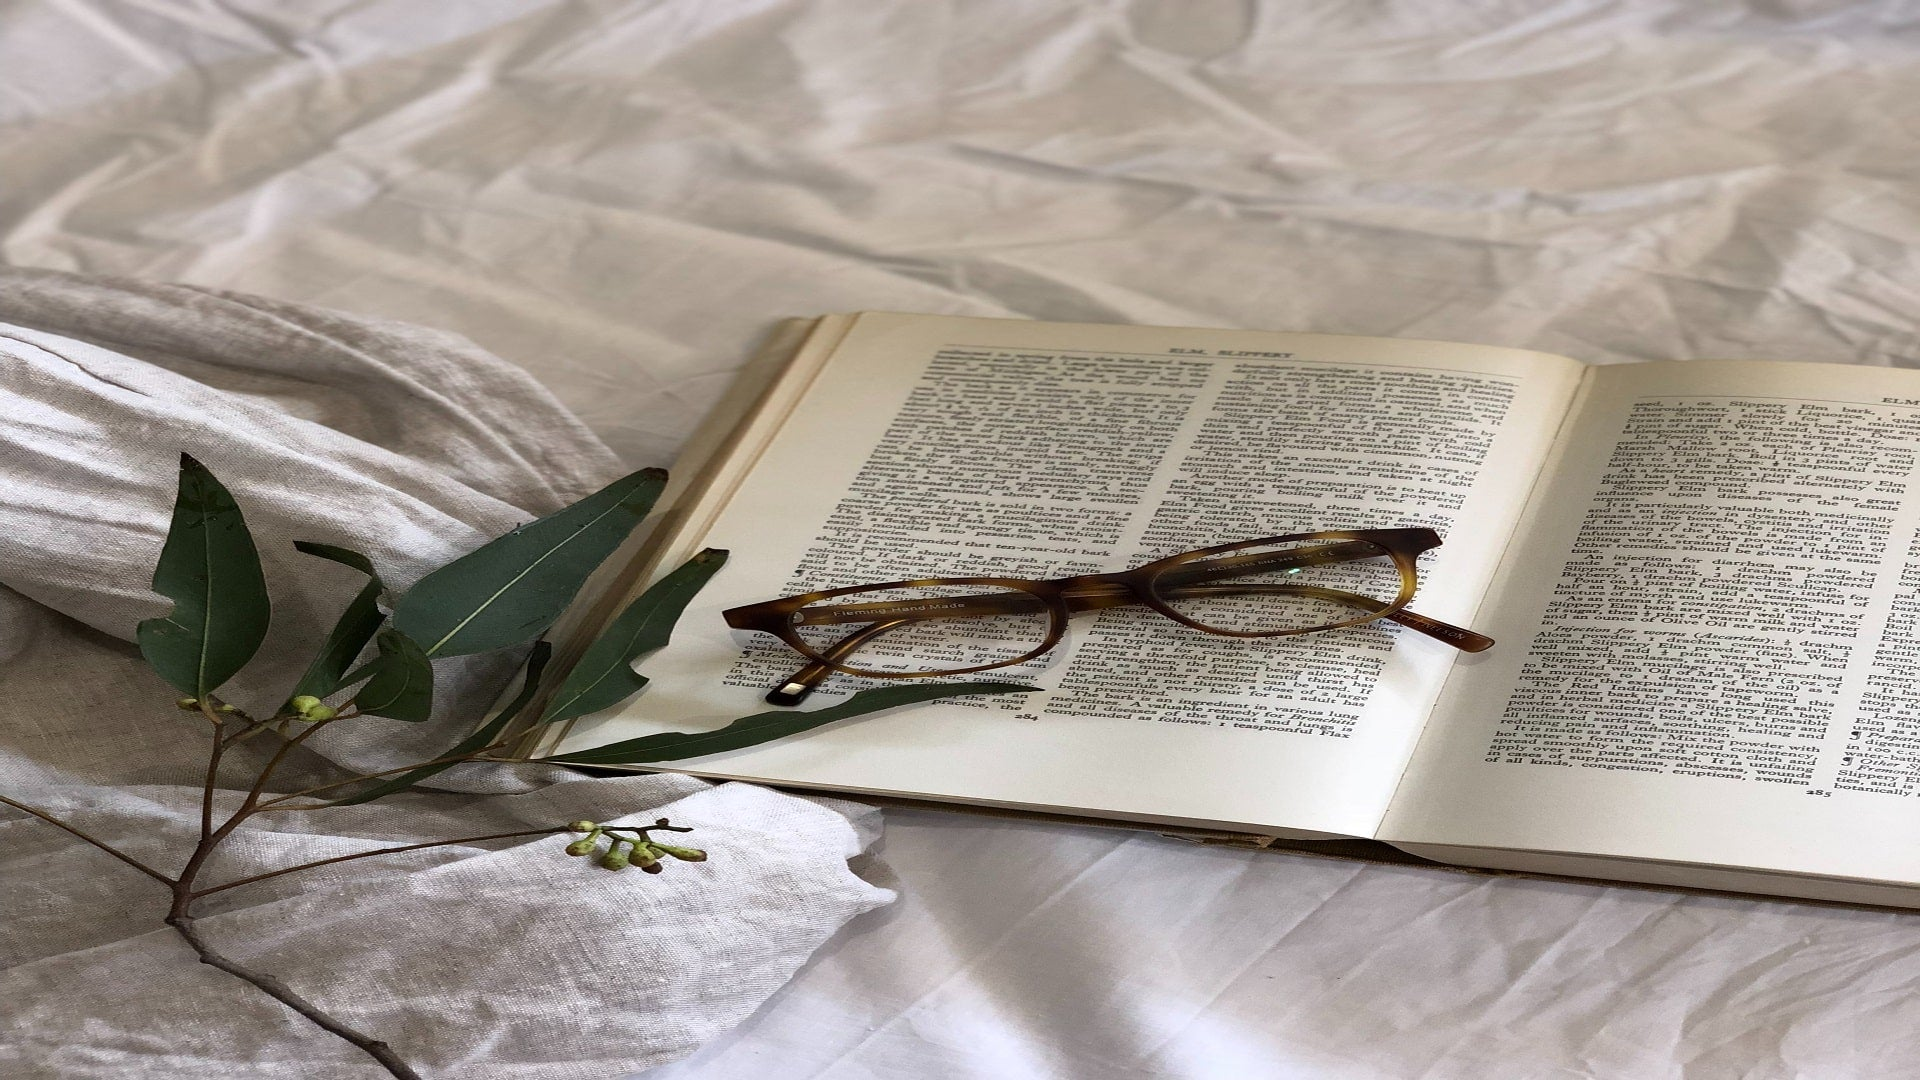 book with reading glasses and eucalyptus on bed